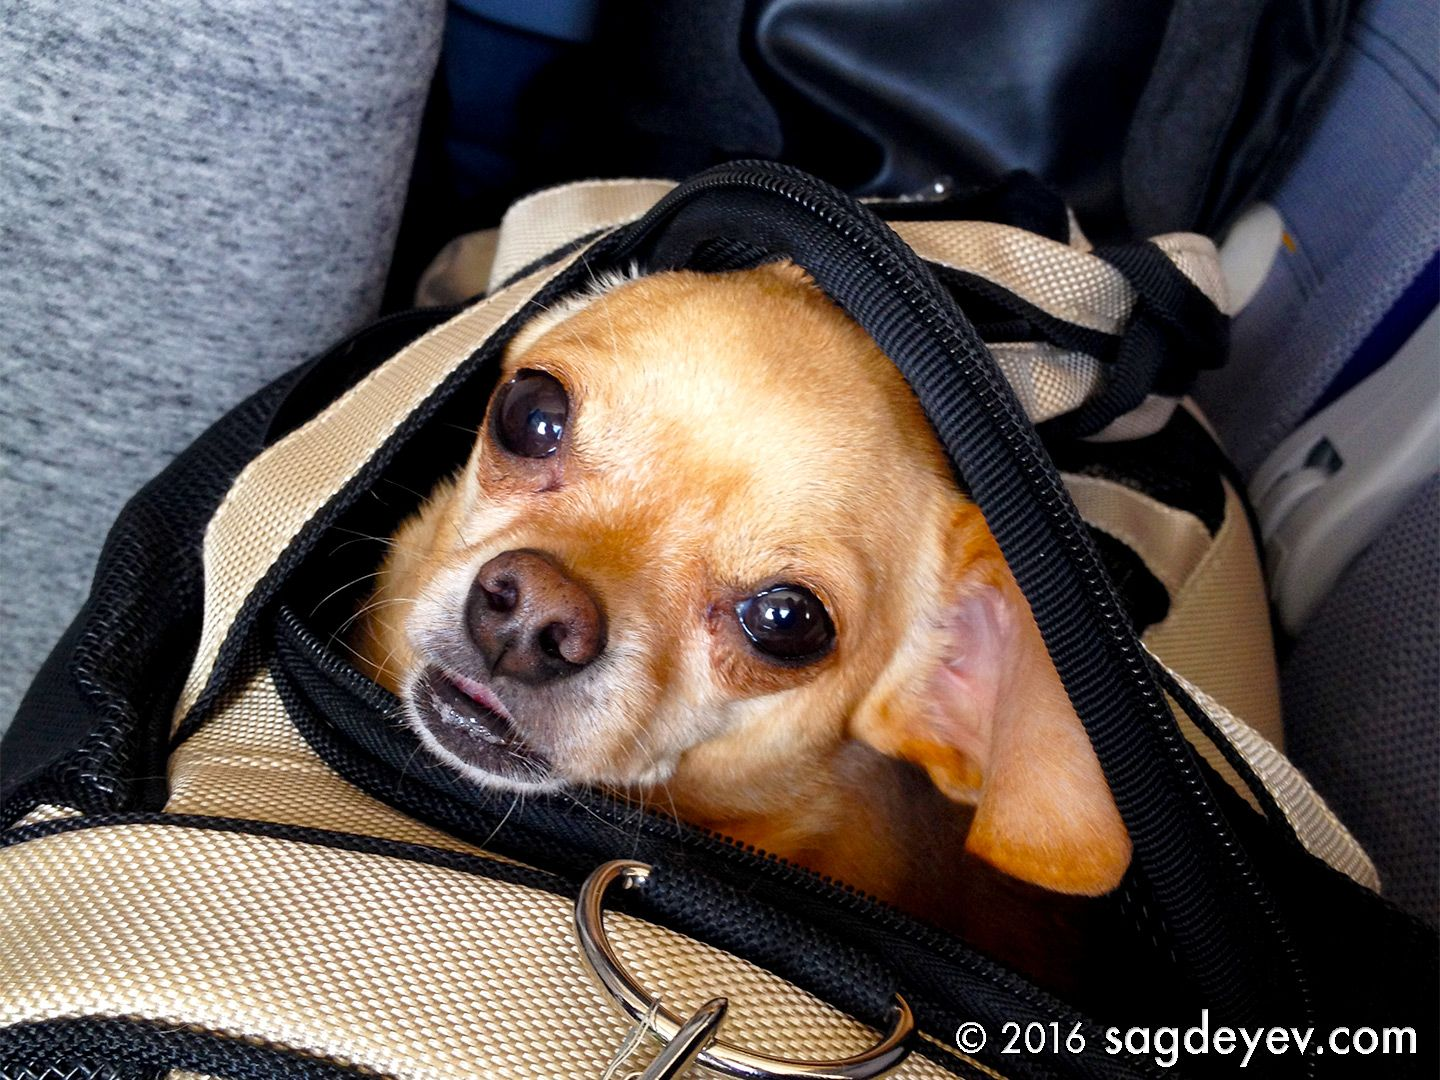 A Cute Dog My Neighbour On The Way To Tokyo